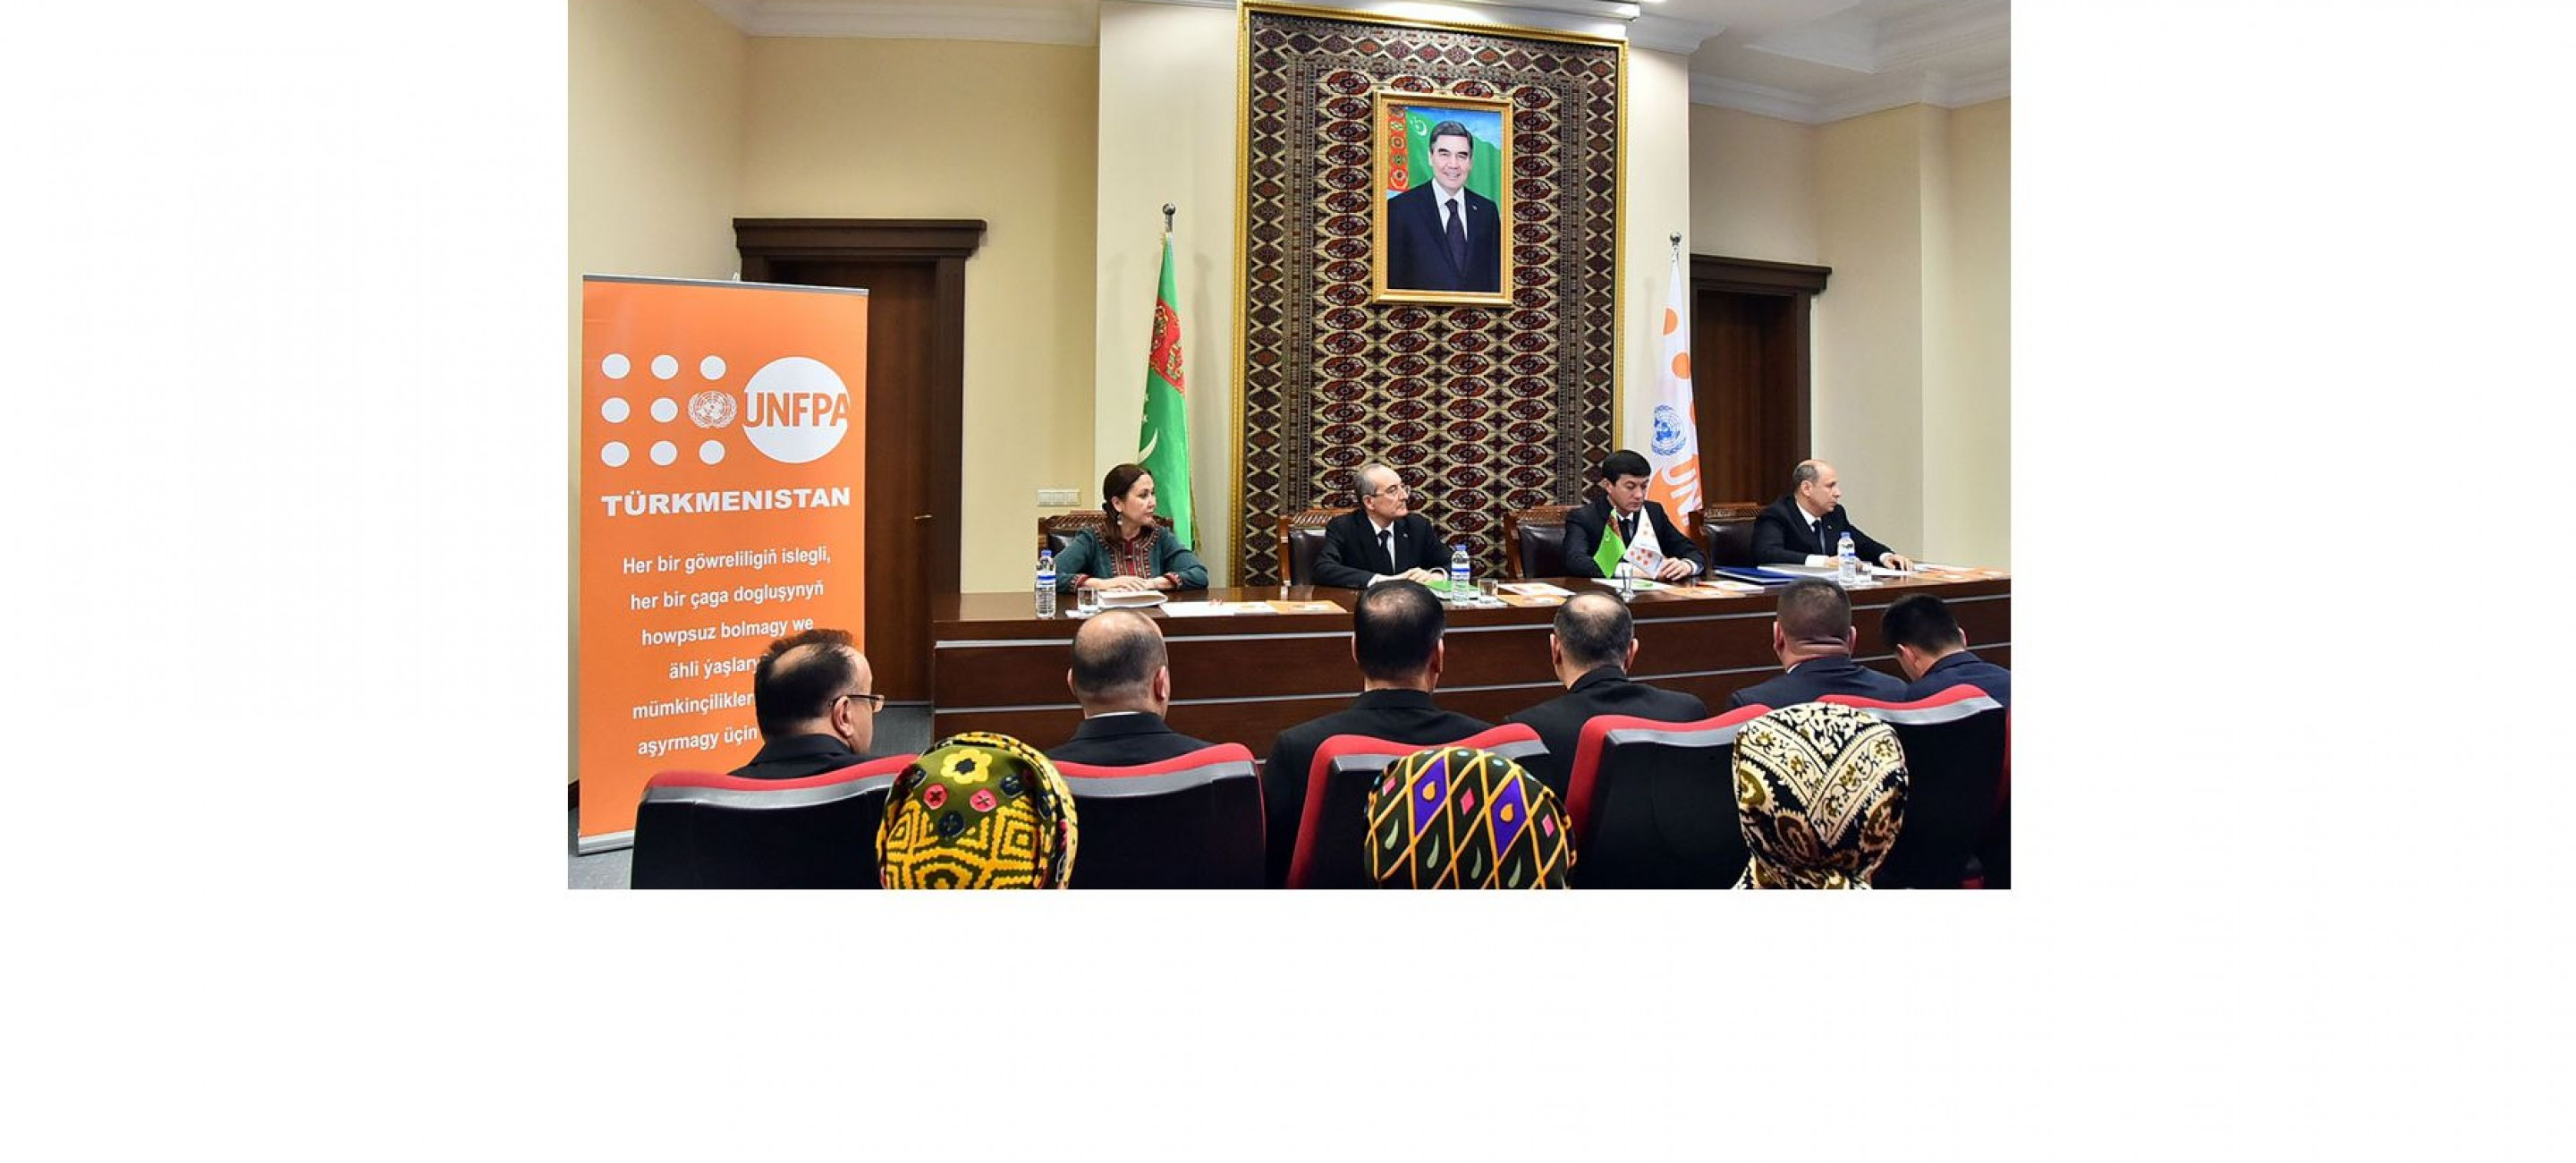 REPRESENTATIVES OF TURKMENISTAN AND THE UNITED NATIONS POPULATION FUND SIGNED A NUMBER OF DOCUMENTS